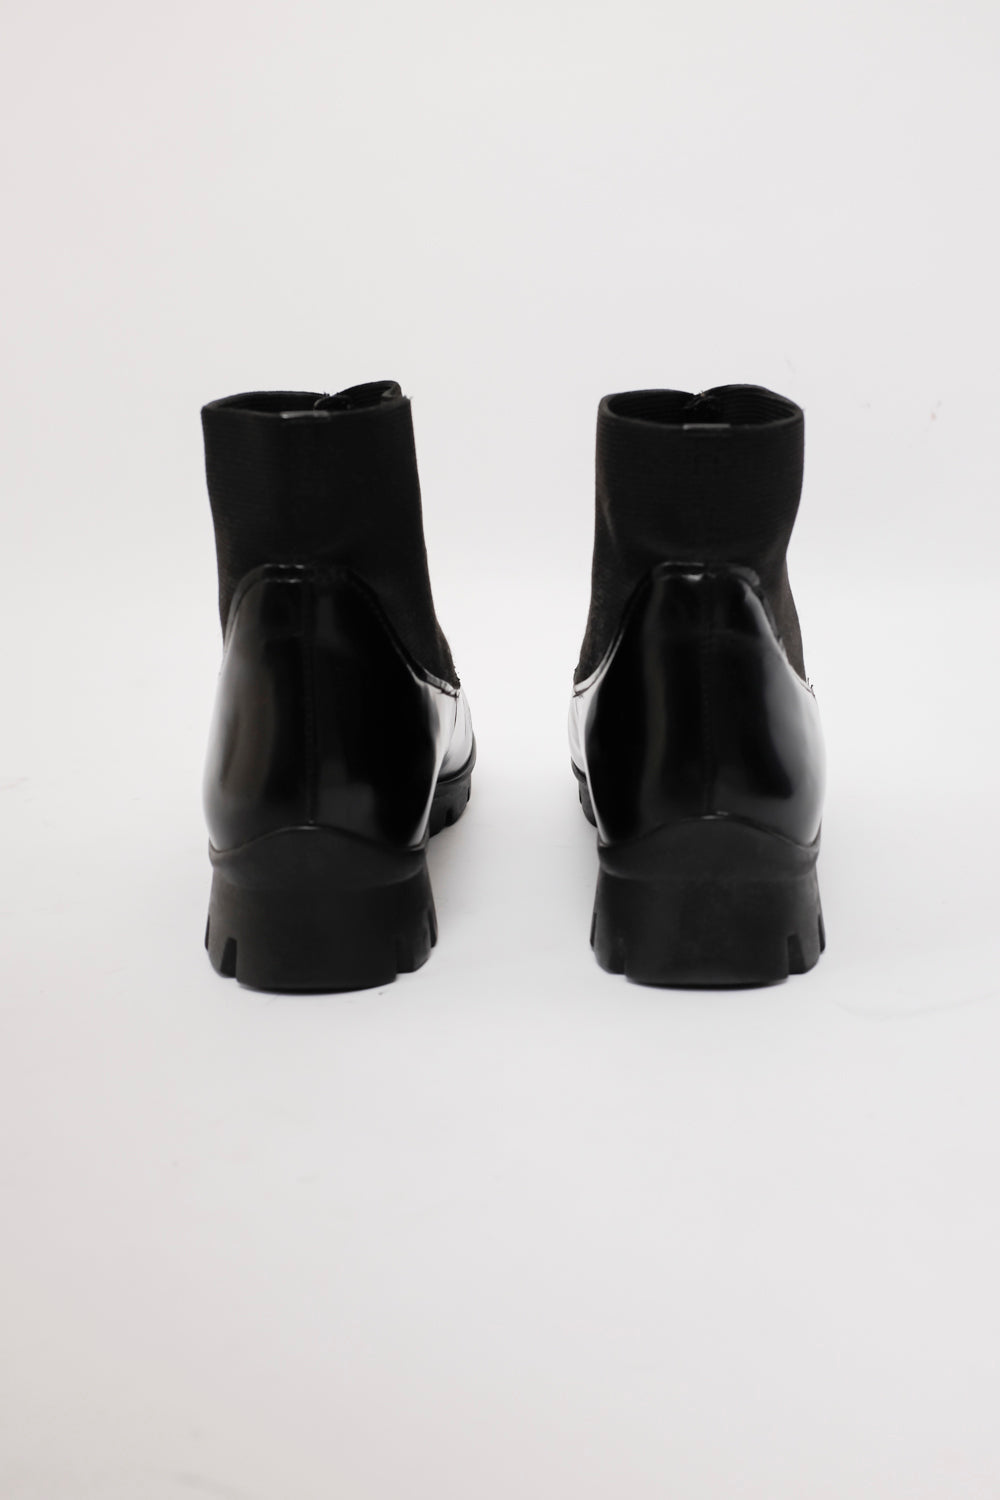 0022_DERBY PATENT LEATHER BOOTS 38